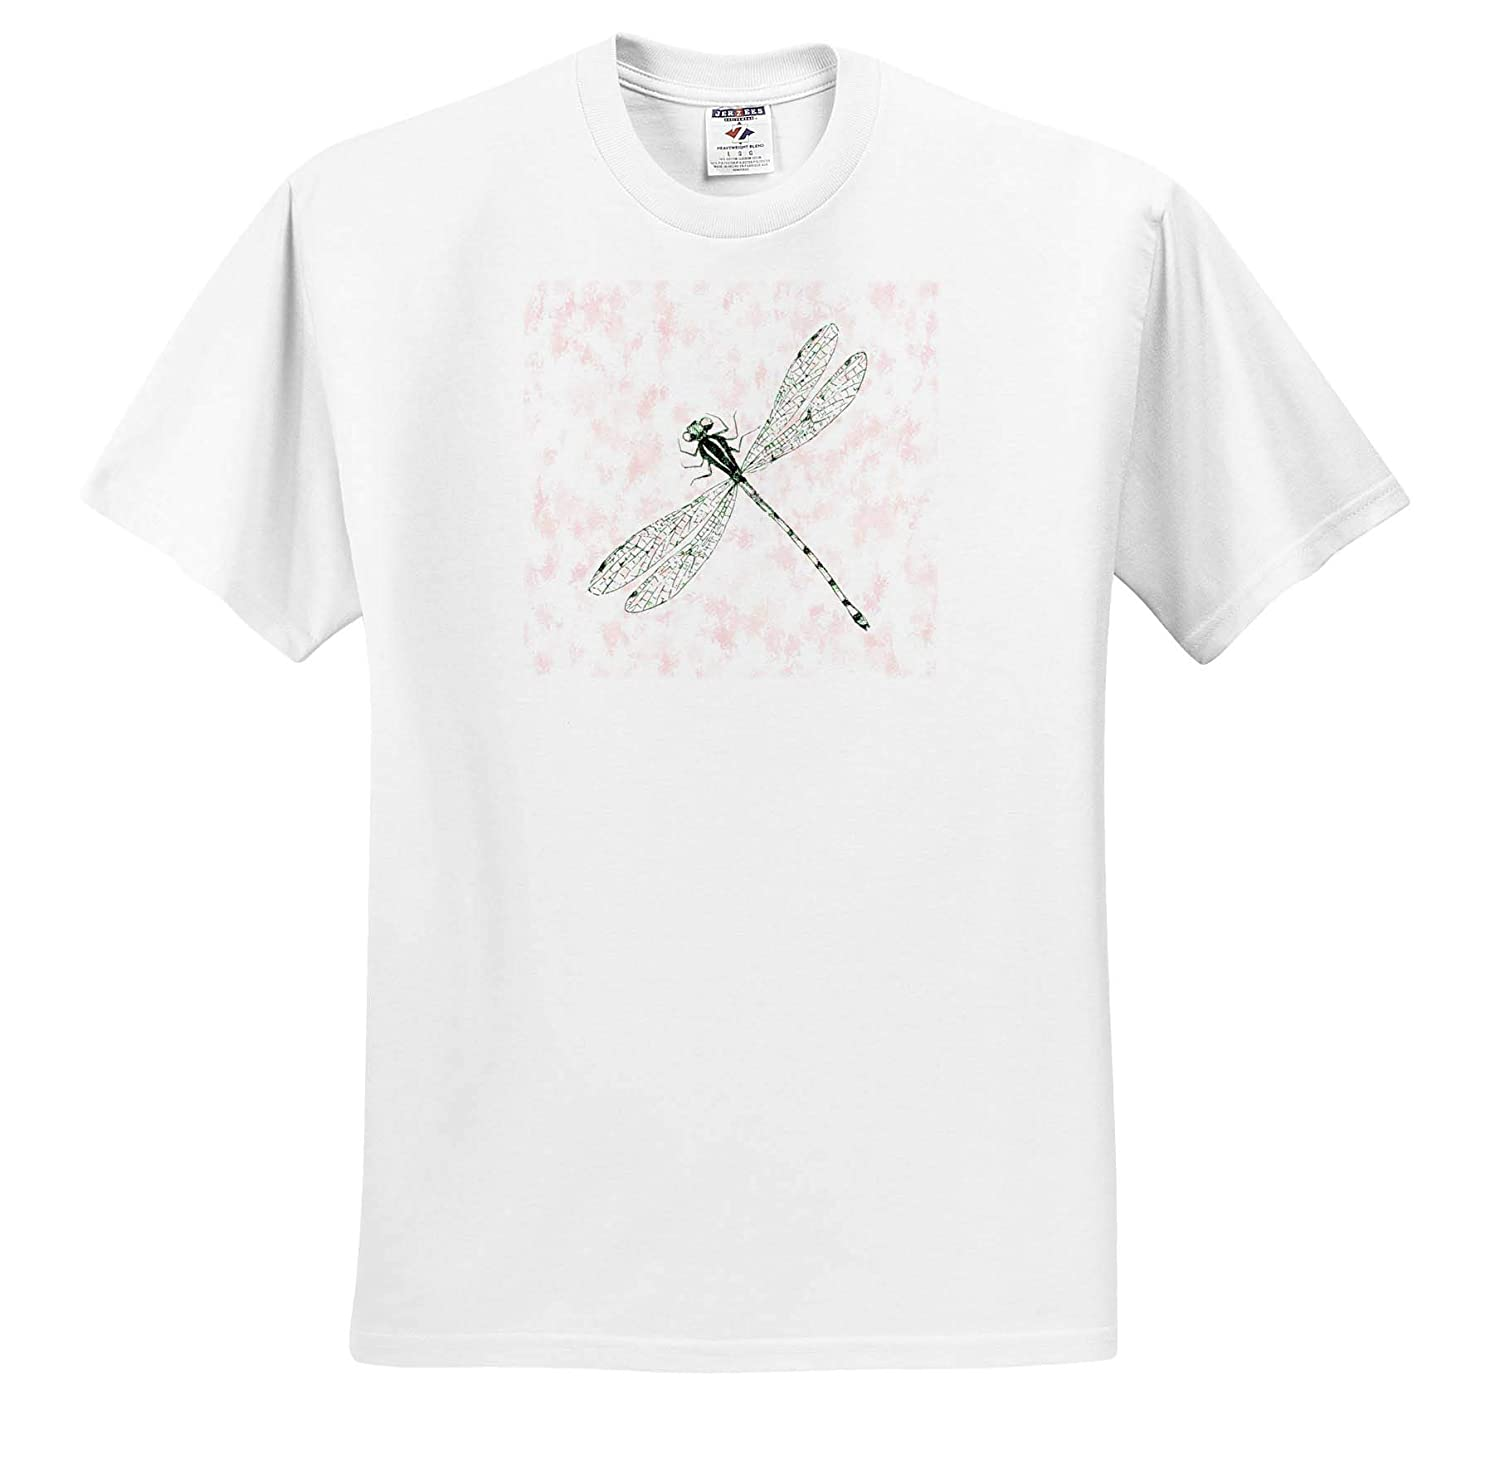 Image of Dragonfly On Marbelized Pink Nature T-Shirts 3dRose Lens Art by Florene